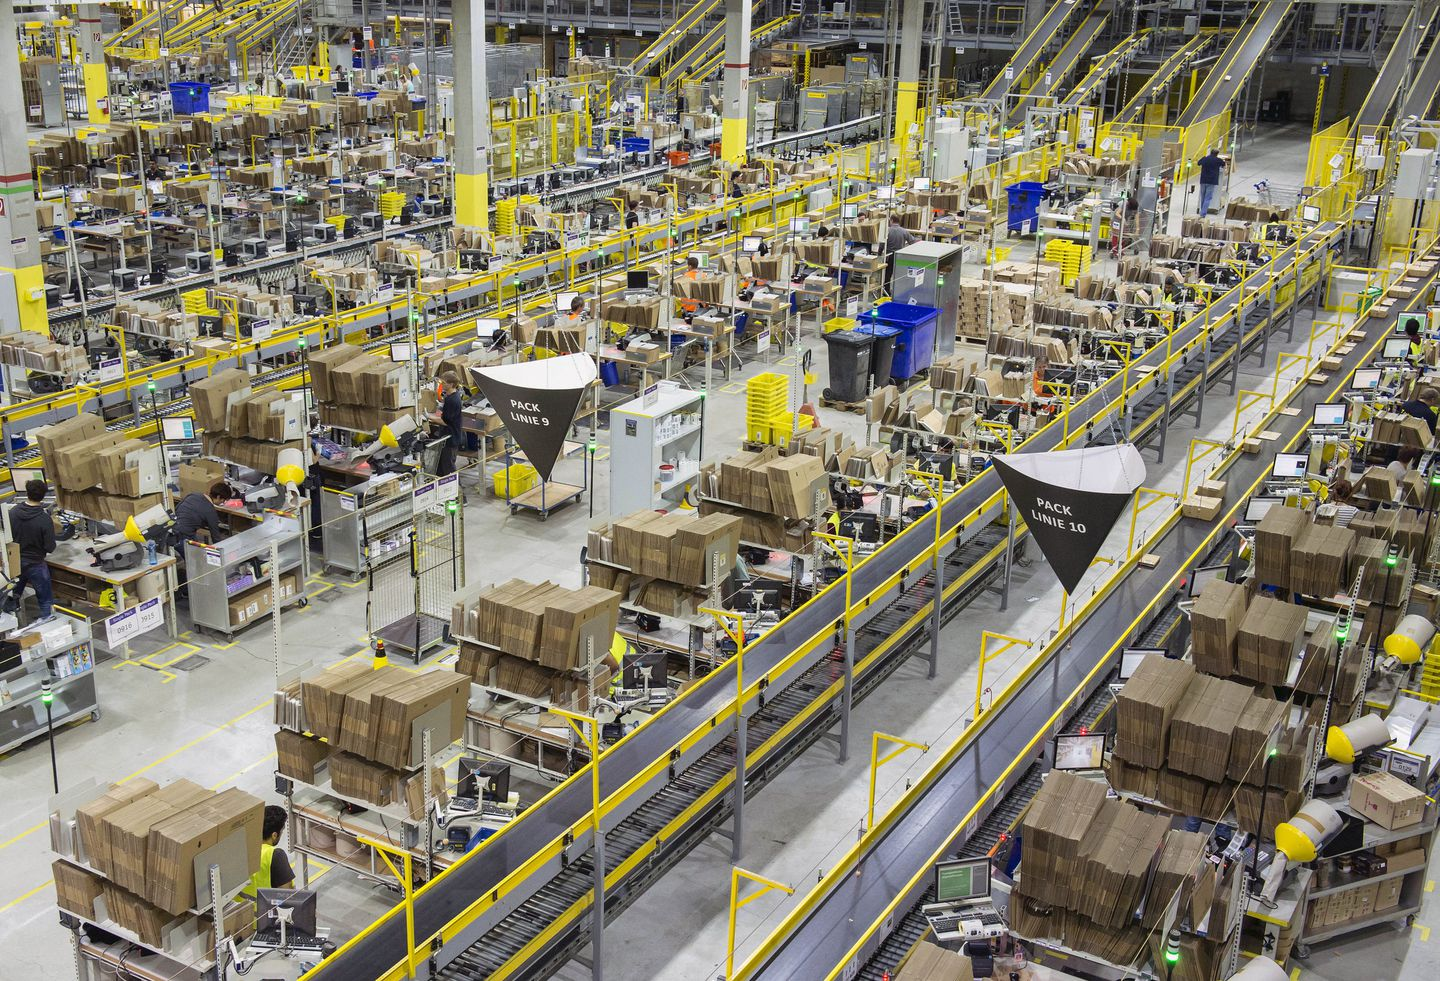 Amazon inks deal on fulfillment center in Fall River - The Boston